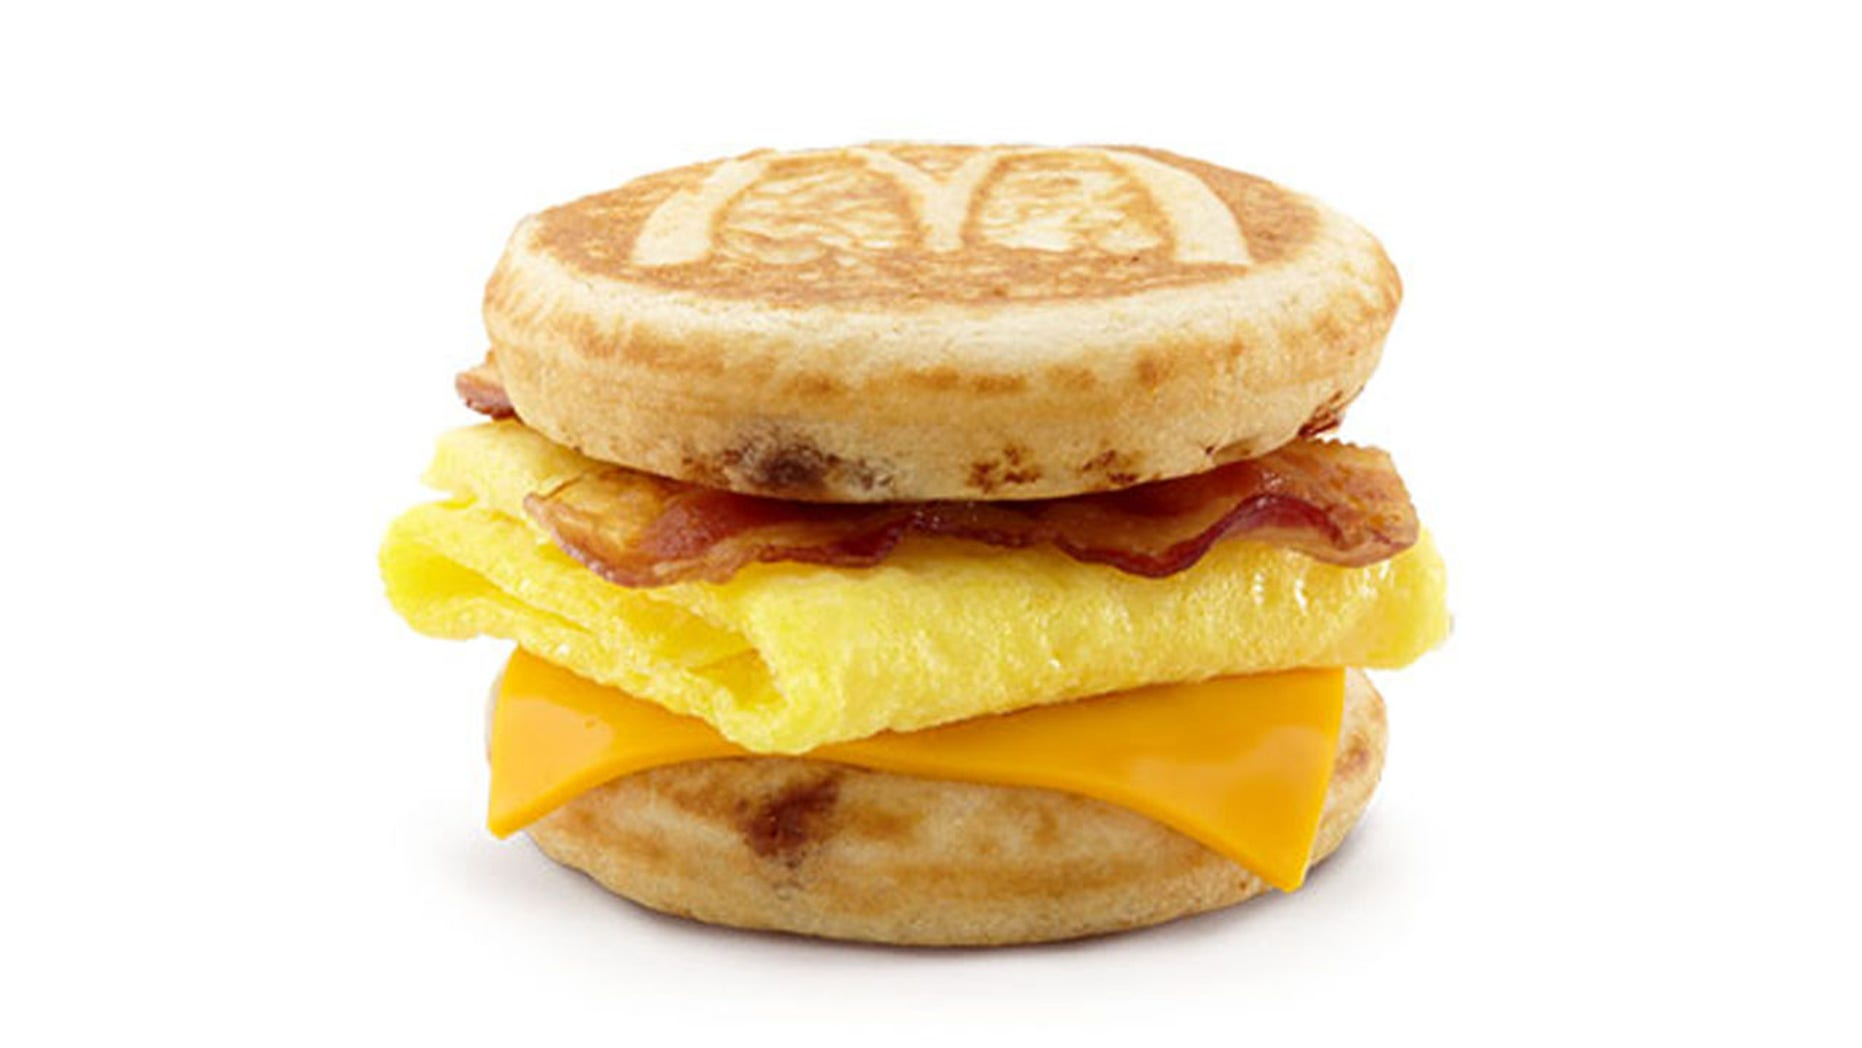 McDonald's restaurants in Tulsa will try adding McGriddle sandwiches, as well as breakfast sandwiches made with biscuits.